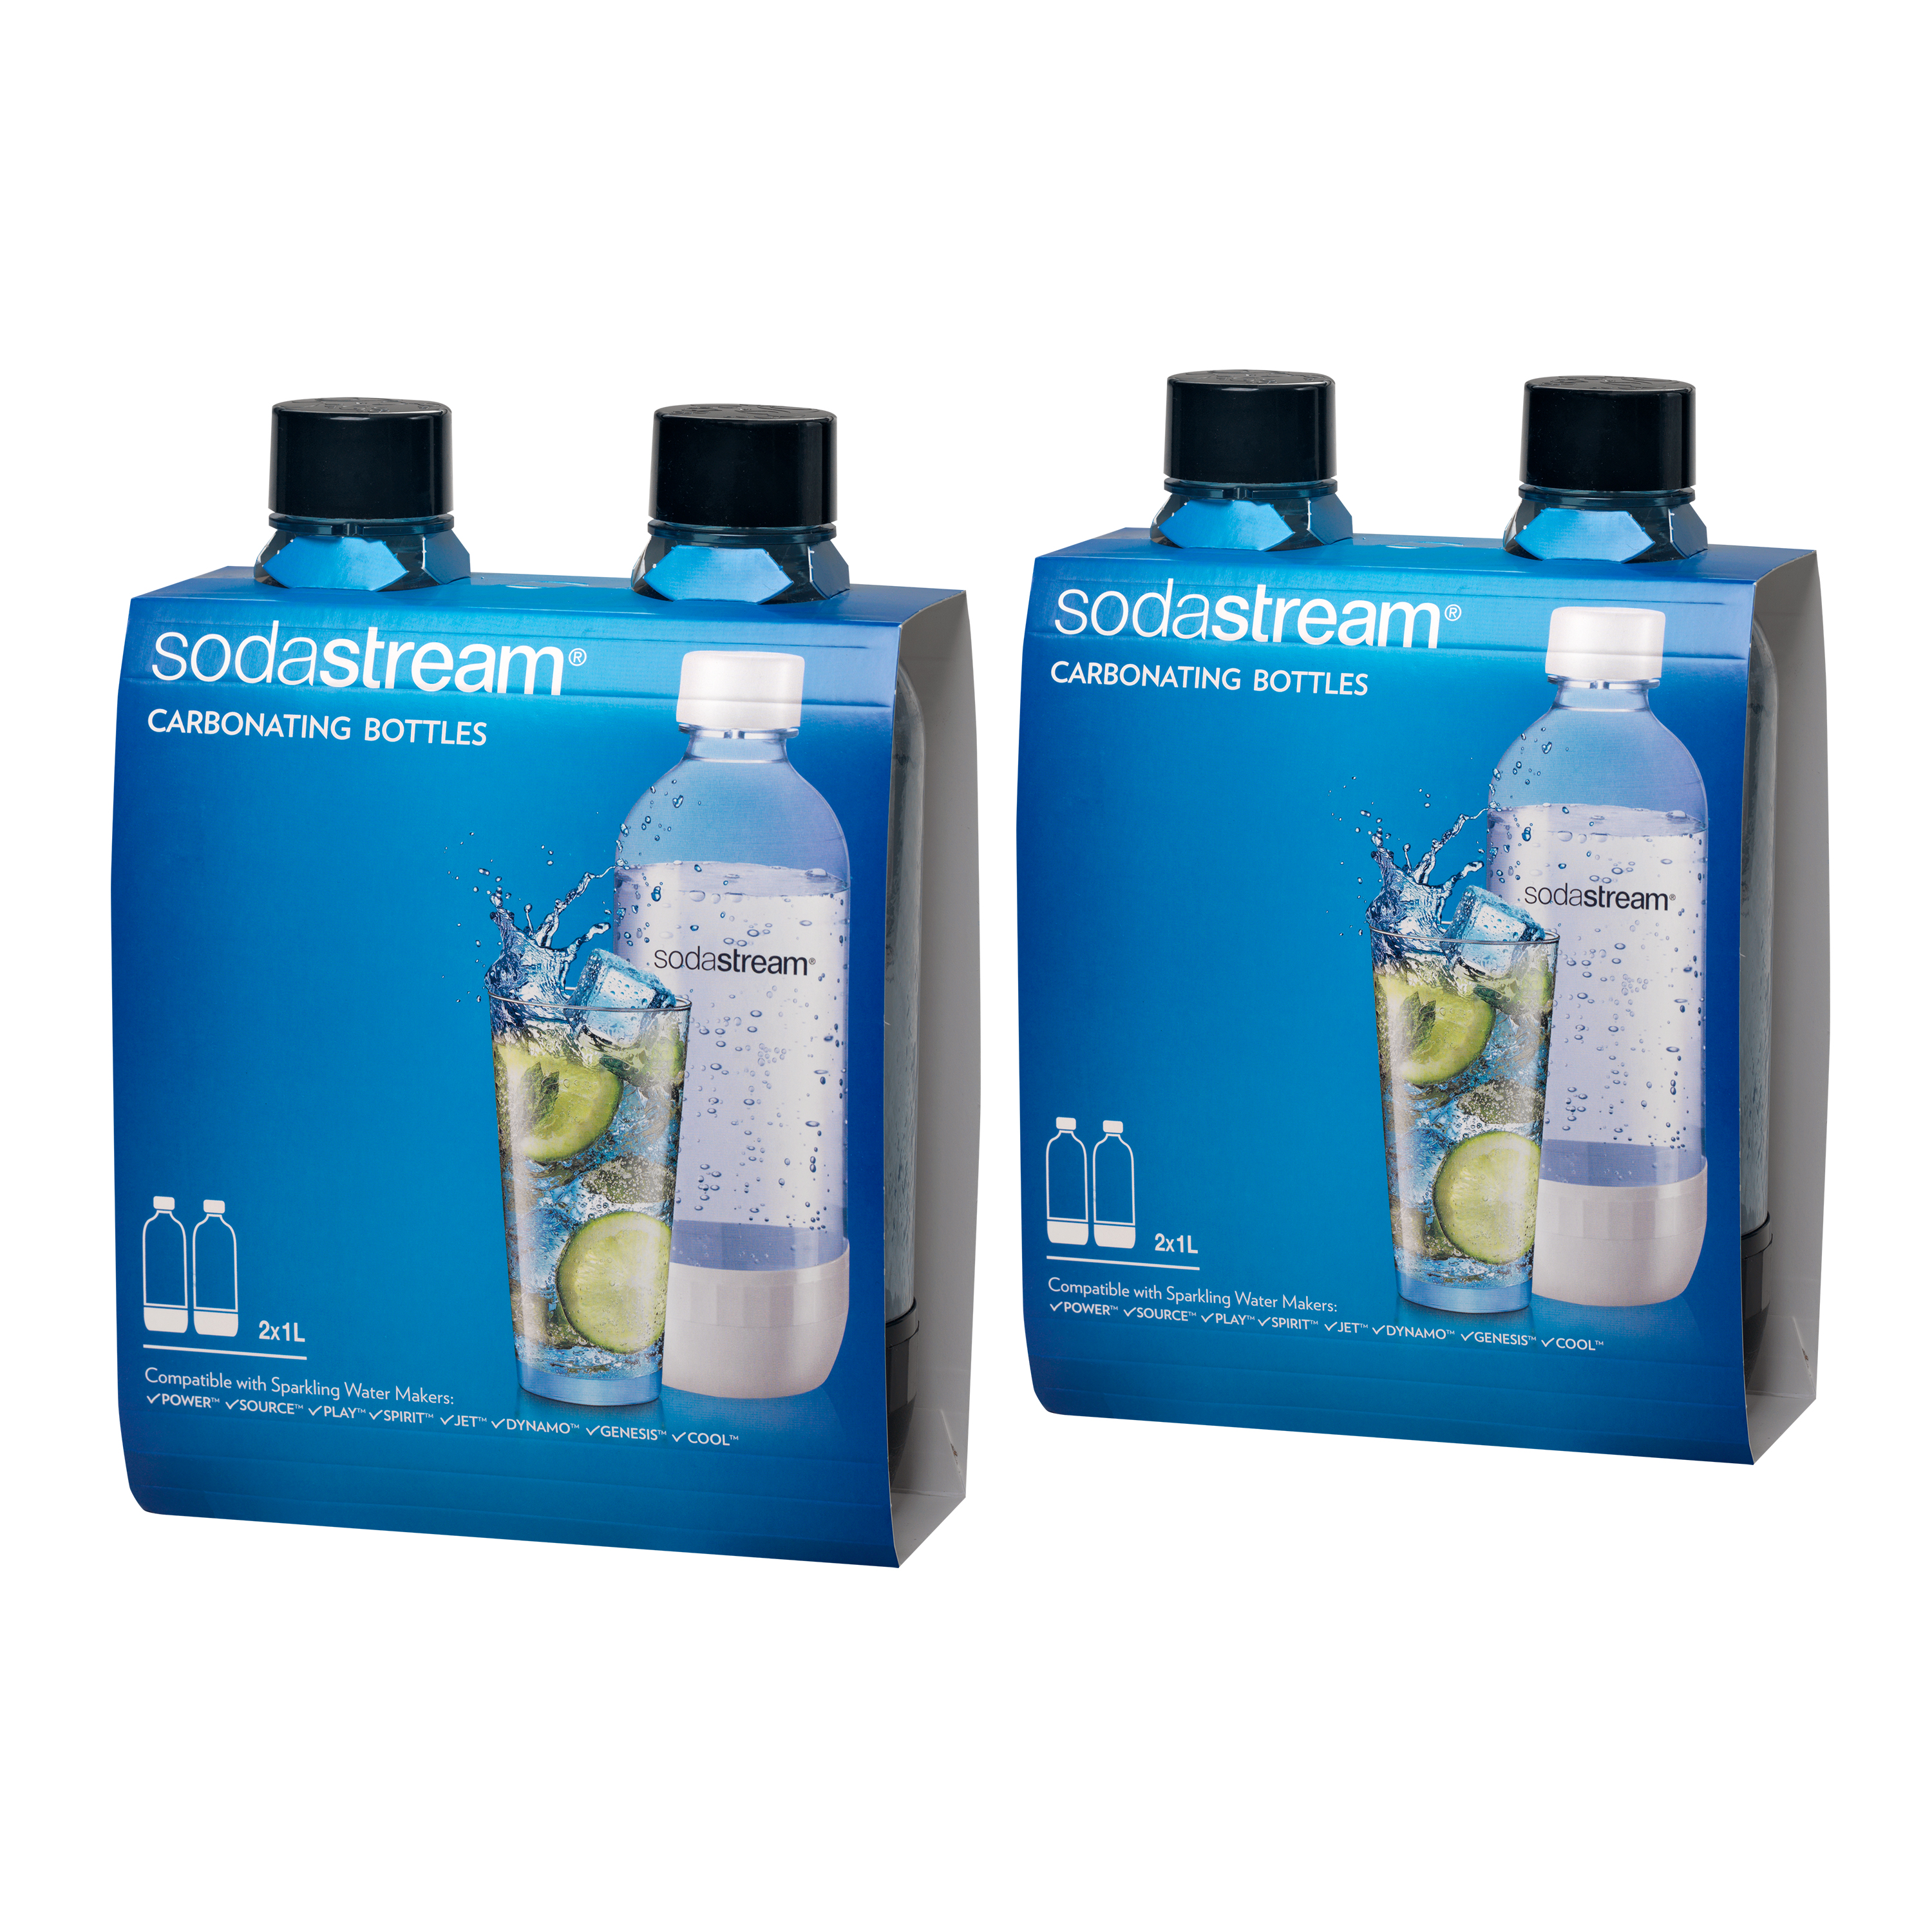 SodaStream 1 Liter Carbonating Bottles 4-Pack, Black